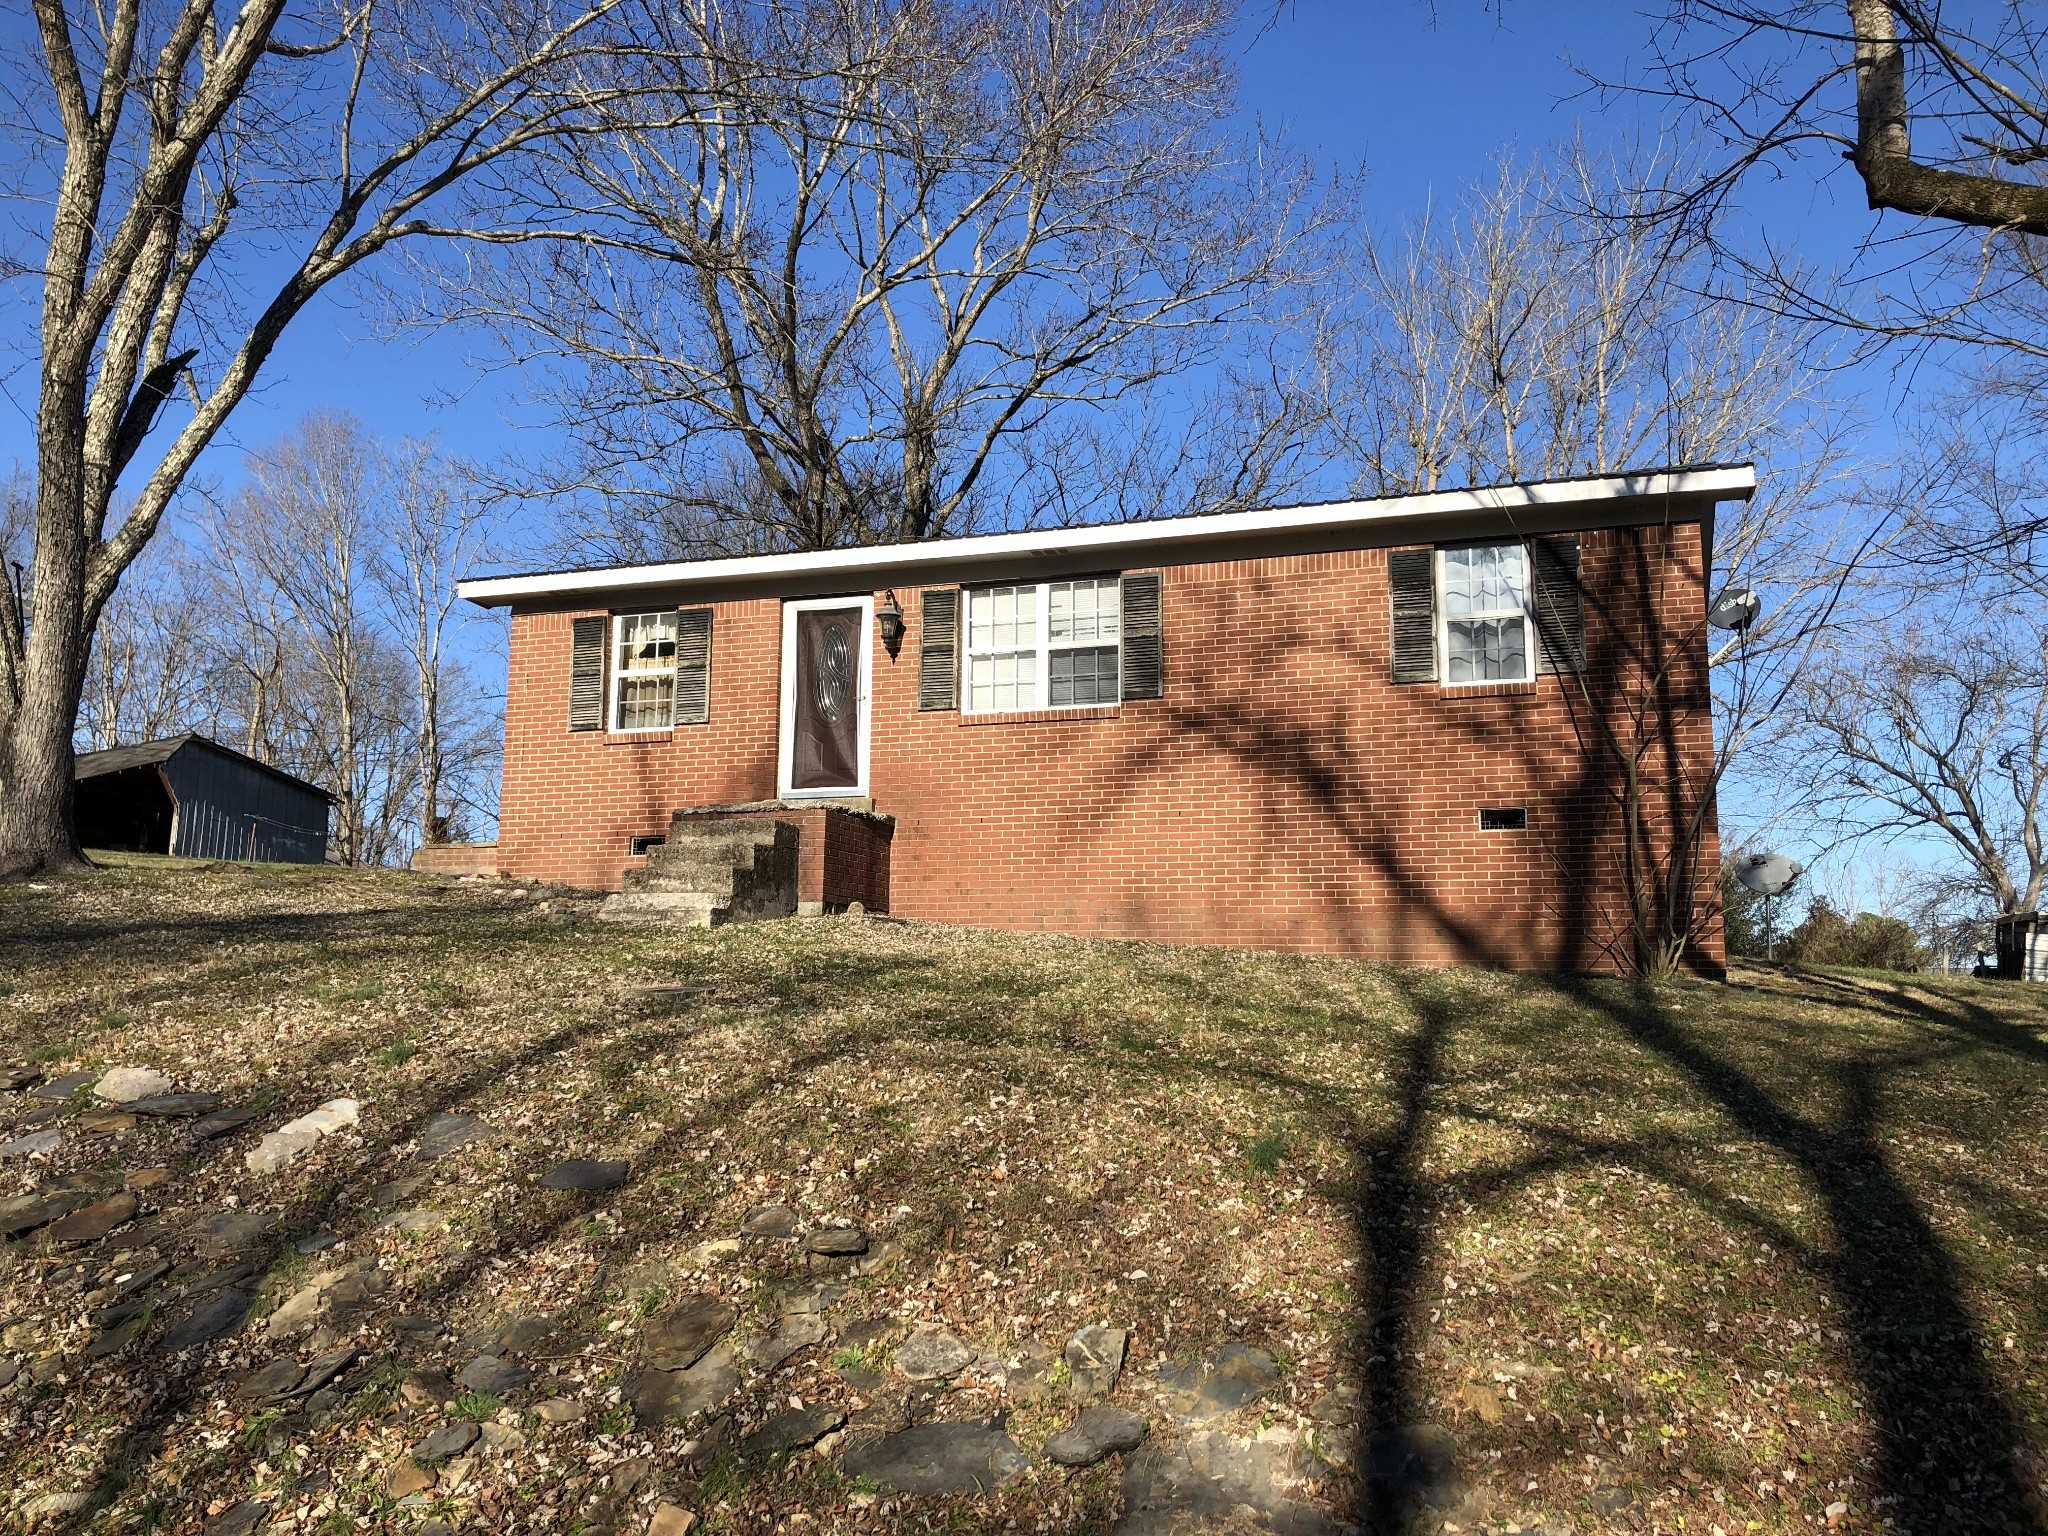 322 Heady Ridge Rd, Red Boiling Springs, TN 37150 - Red Boiling Springs, TN real estate listing